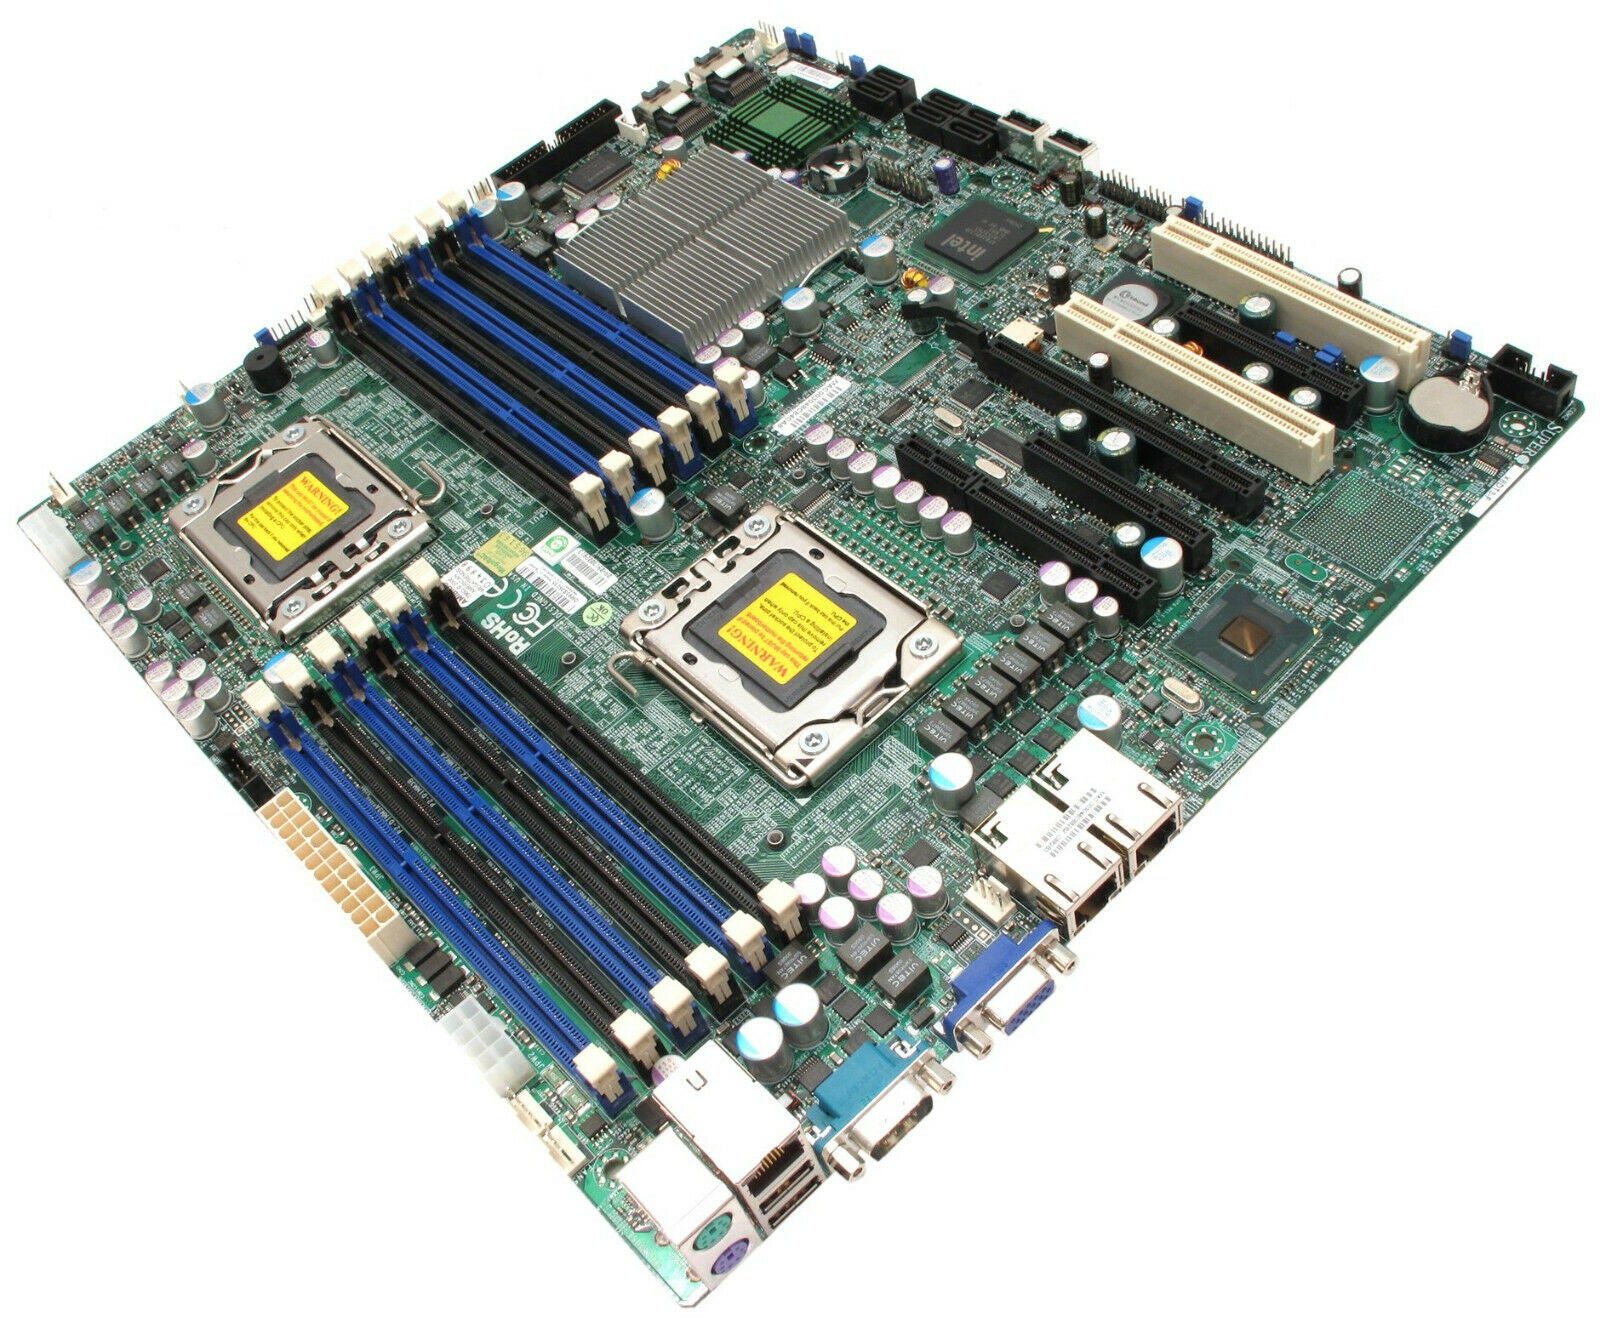 Supermicro X8DT3-F Intel 5520 Chipset Dual Socket LGA 1366 Server Motherboard